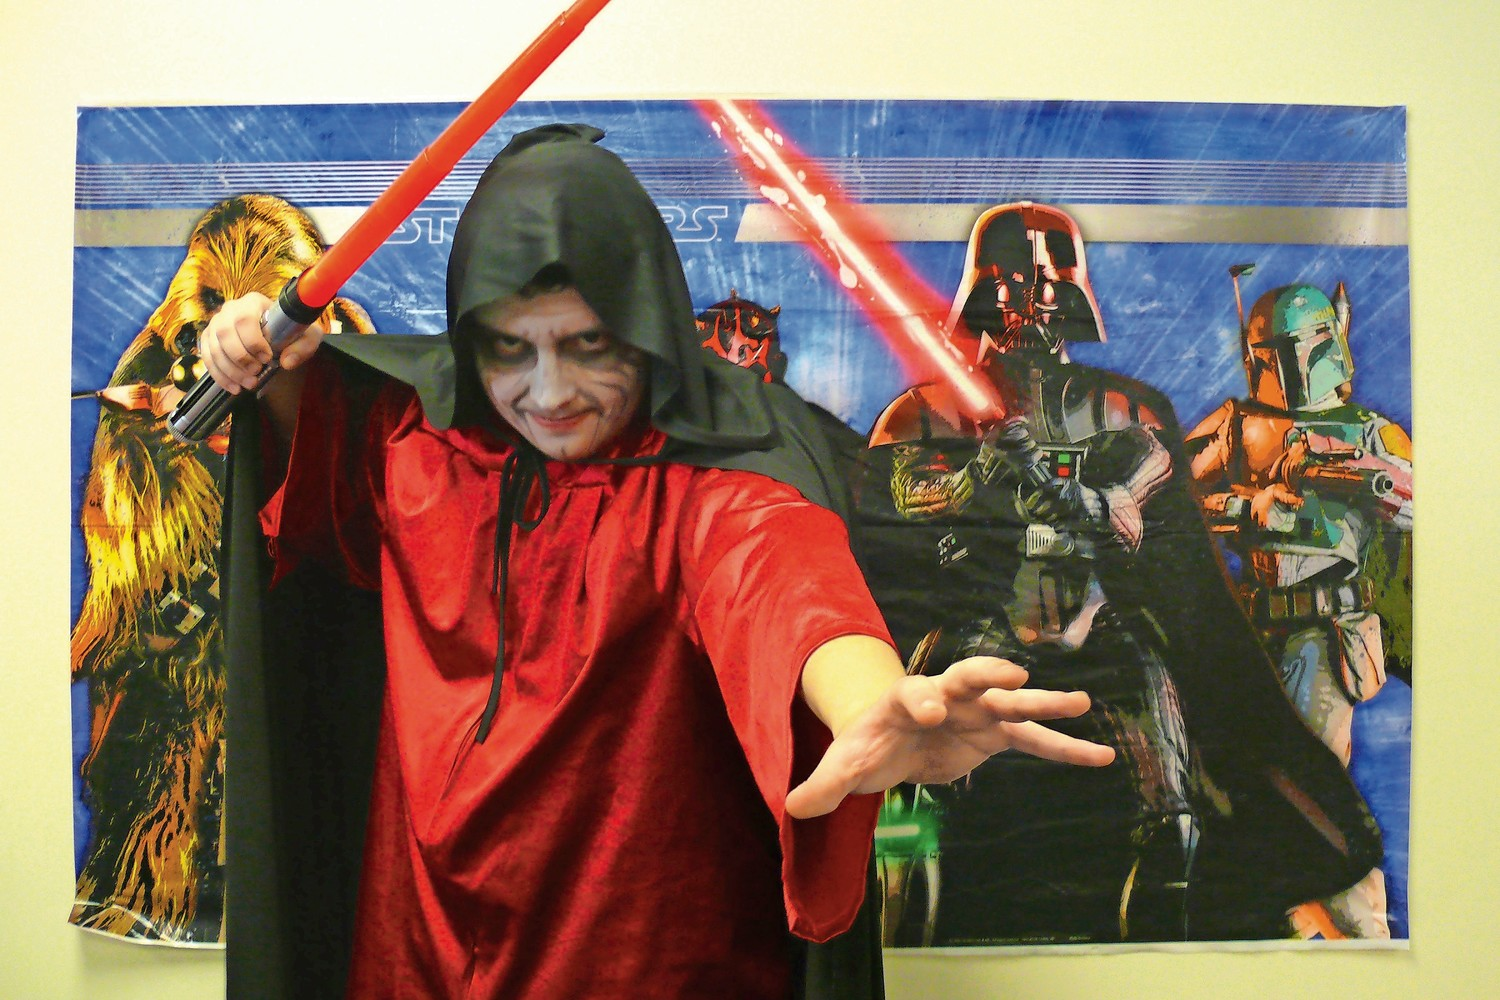 Fourteen-year-old James Licht, of East Meadow, dressed as the Emperior Palpatine.